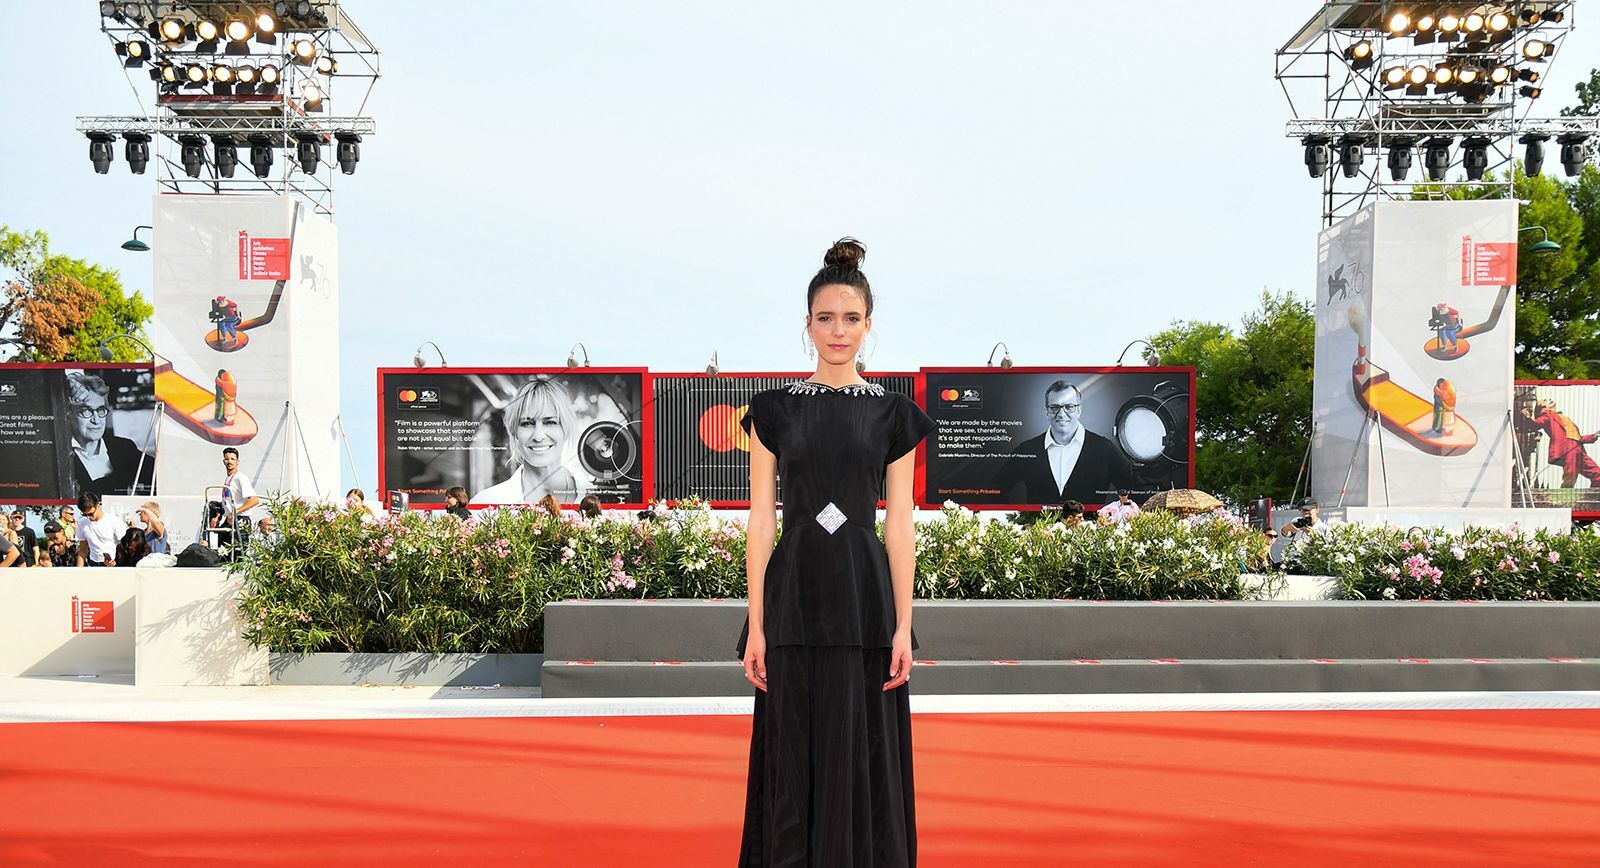 Stacy Martin wearing David Morris diamond earrings at Venice Film Festival red carpet